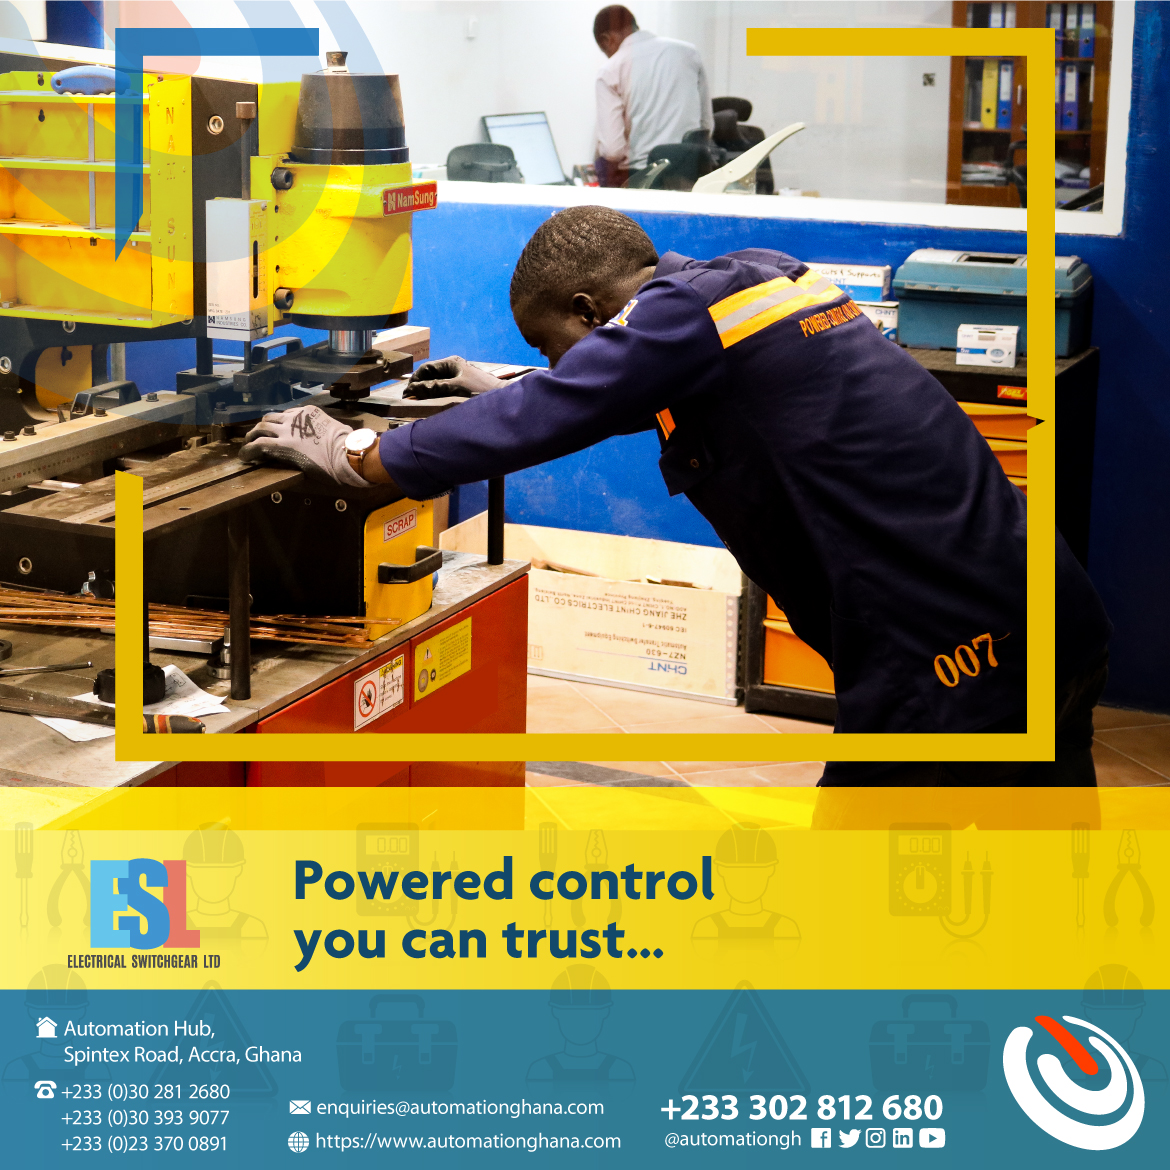 We won't miss a beat ... We're always accurate Electrical Switchgear Ltd - powered control you can trust... #tagg #smartsolutions #eslghpic.twitter.com/9FhvUqyzfw